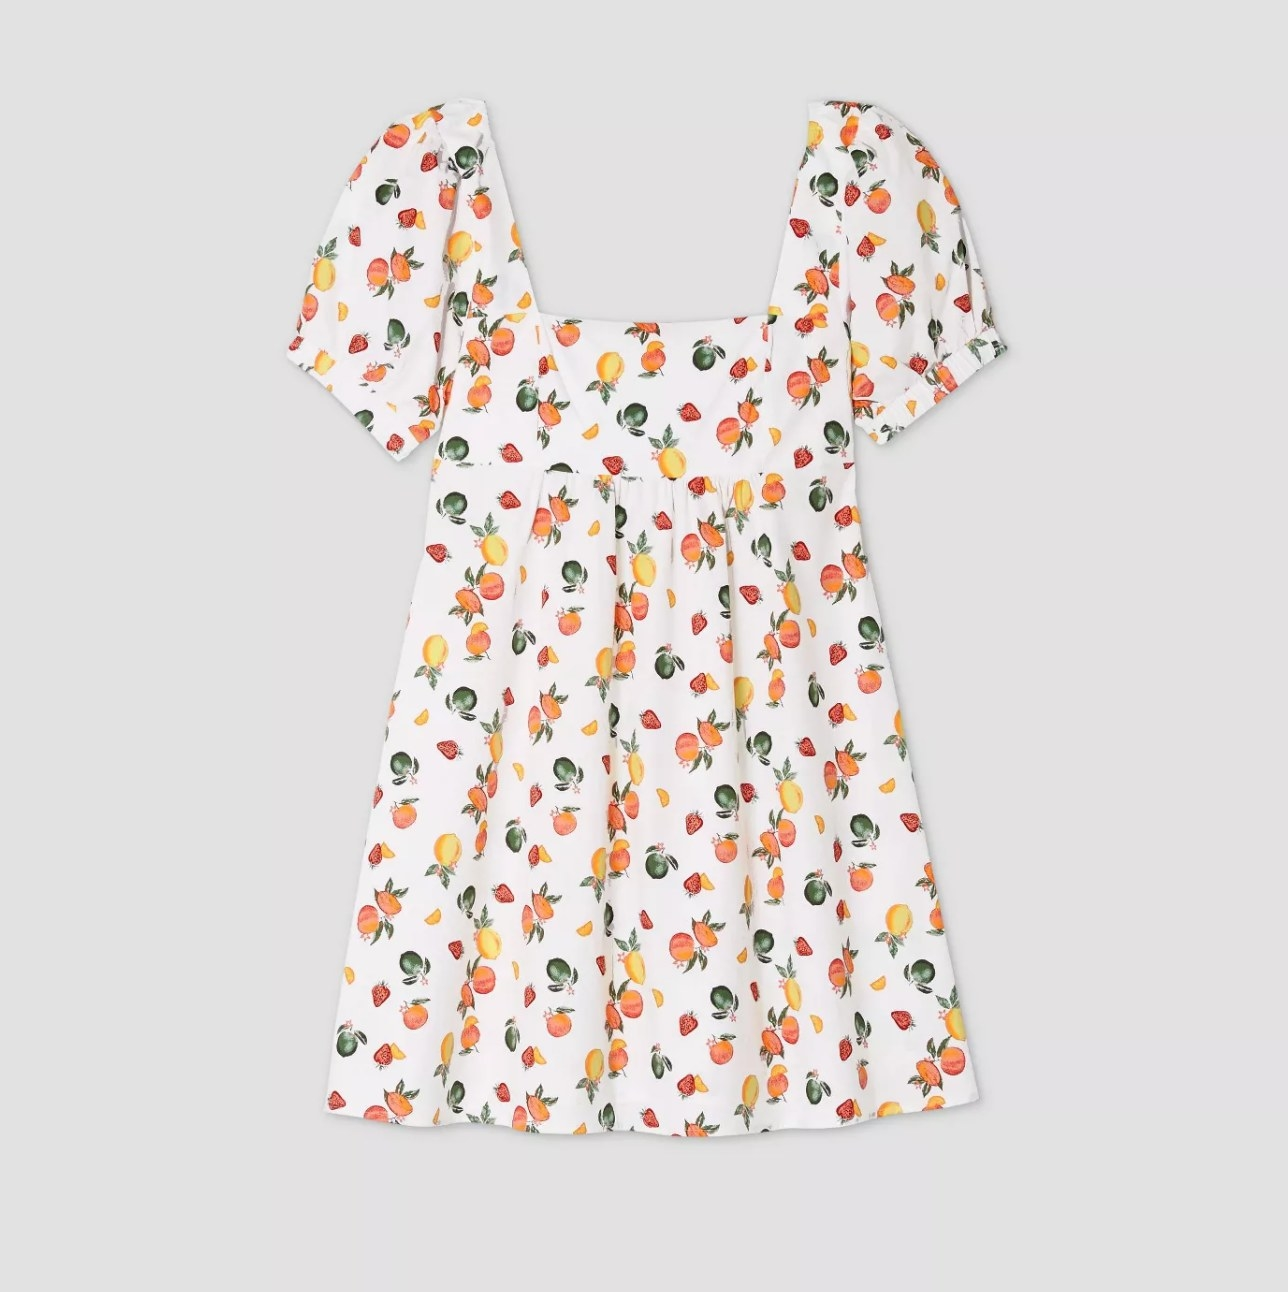 The fruit-printed dress